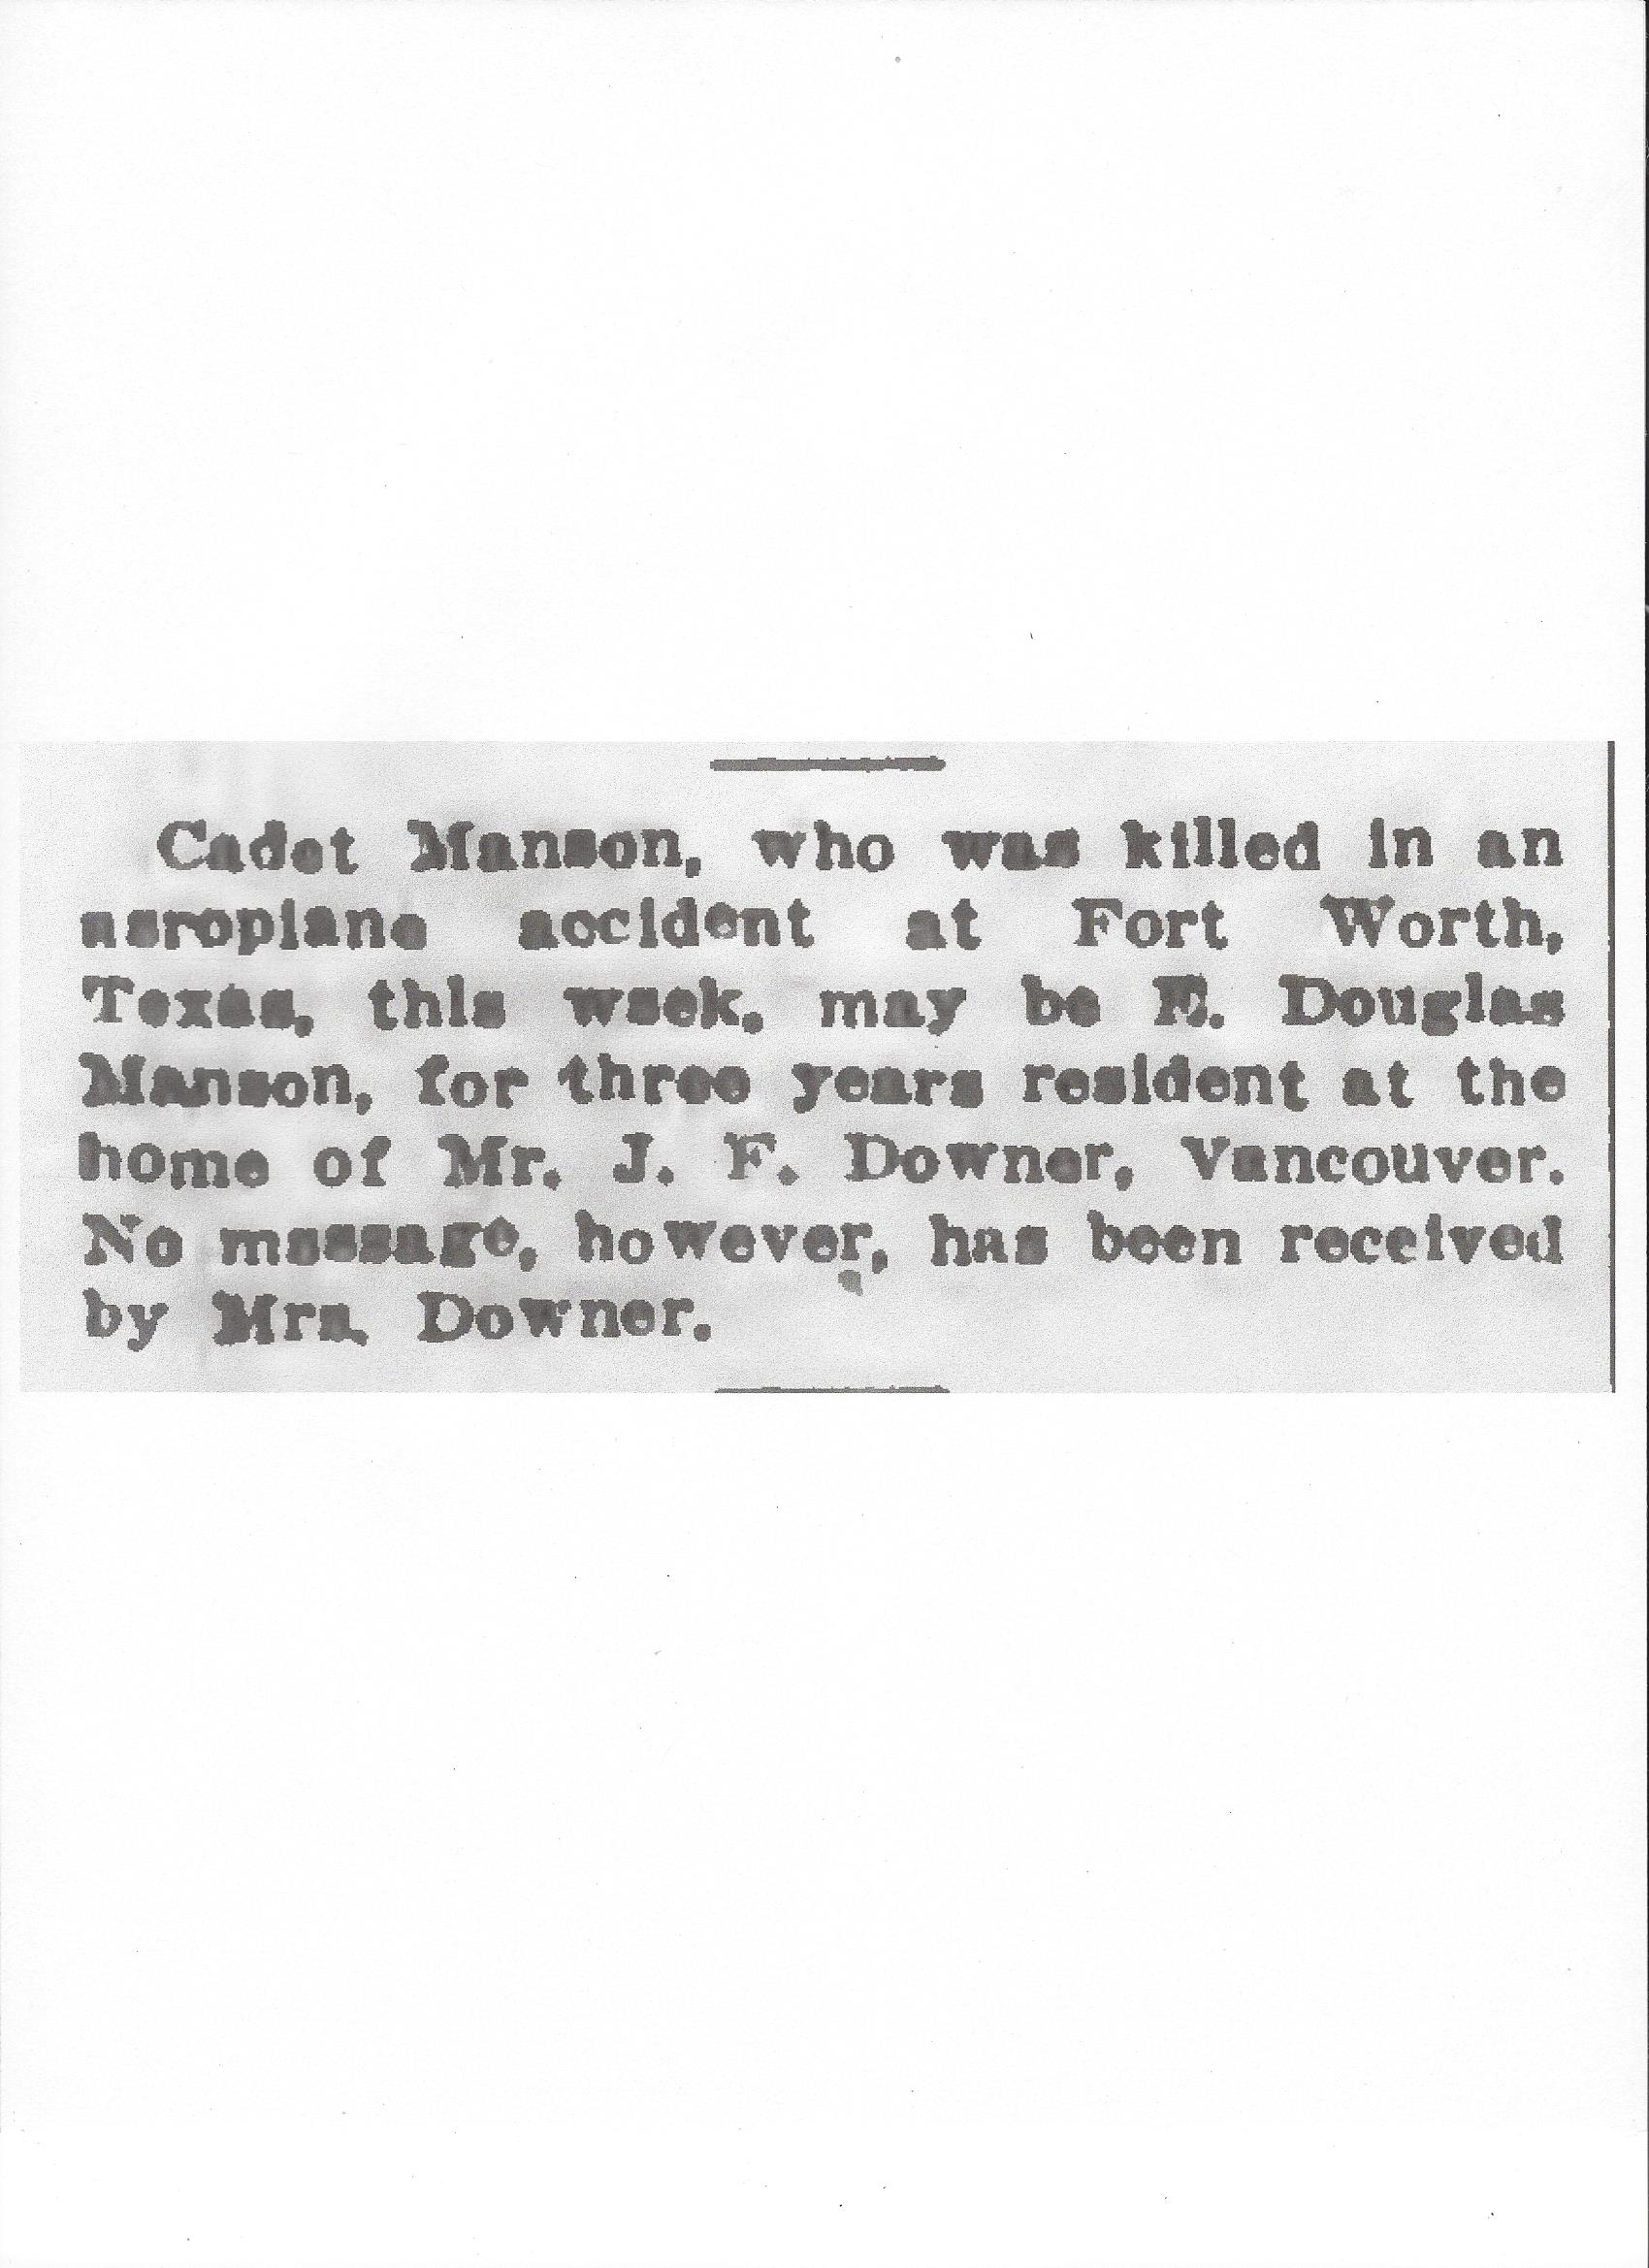 Newspaper clipping– From the Daily Colonist of December 29, 1917. Image taken from web address of http://archive.org/stream/dailycolonist59by330uvic#page/n0/mode/1up